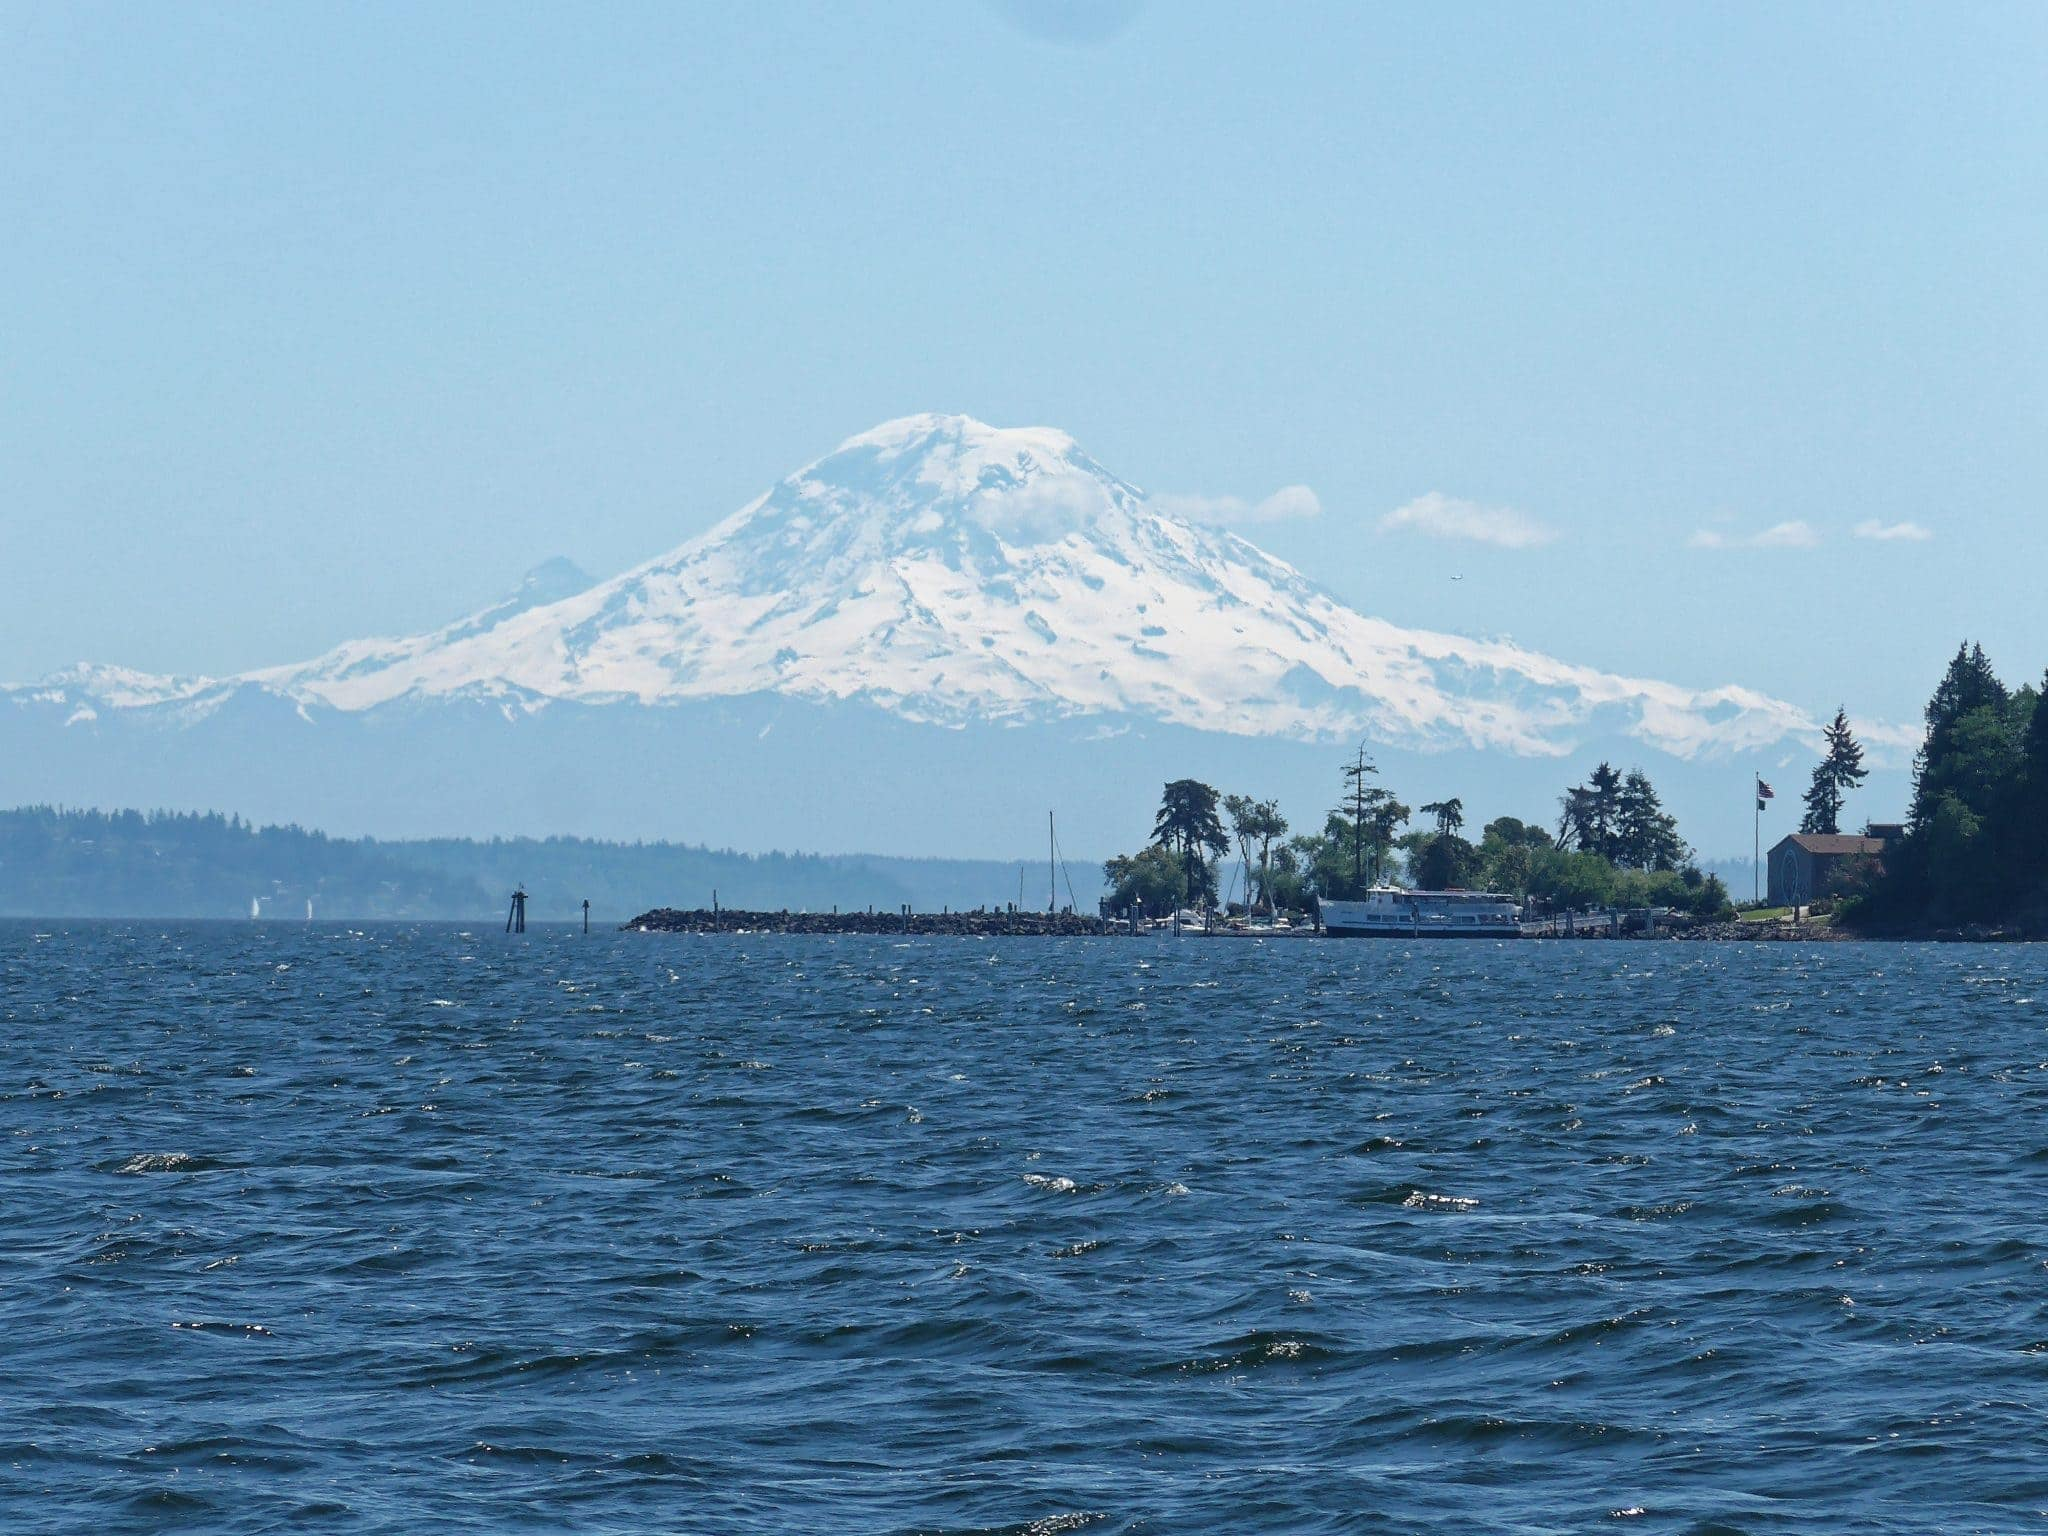 Blake Island with Argosy boat and Mt. Rainier